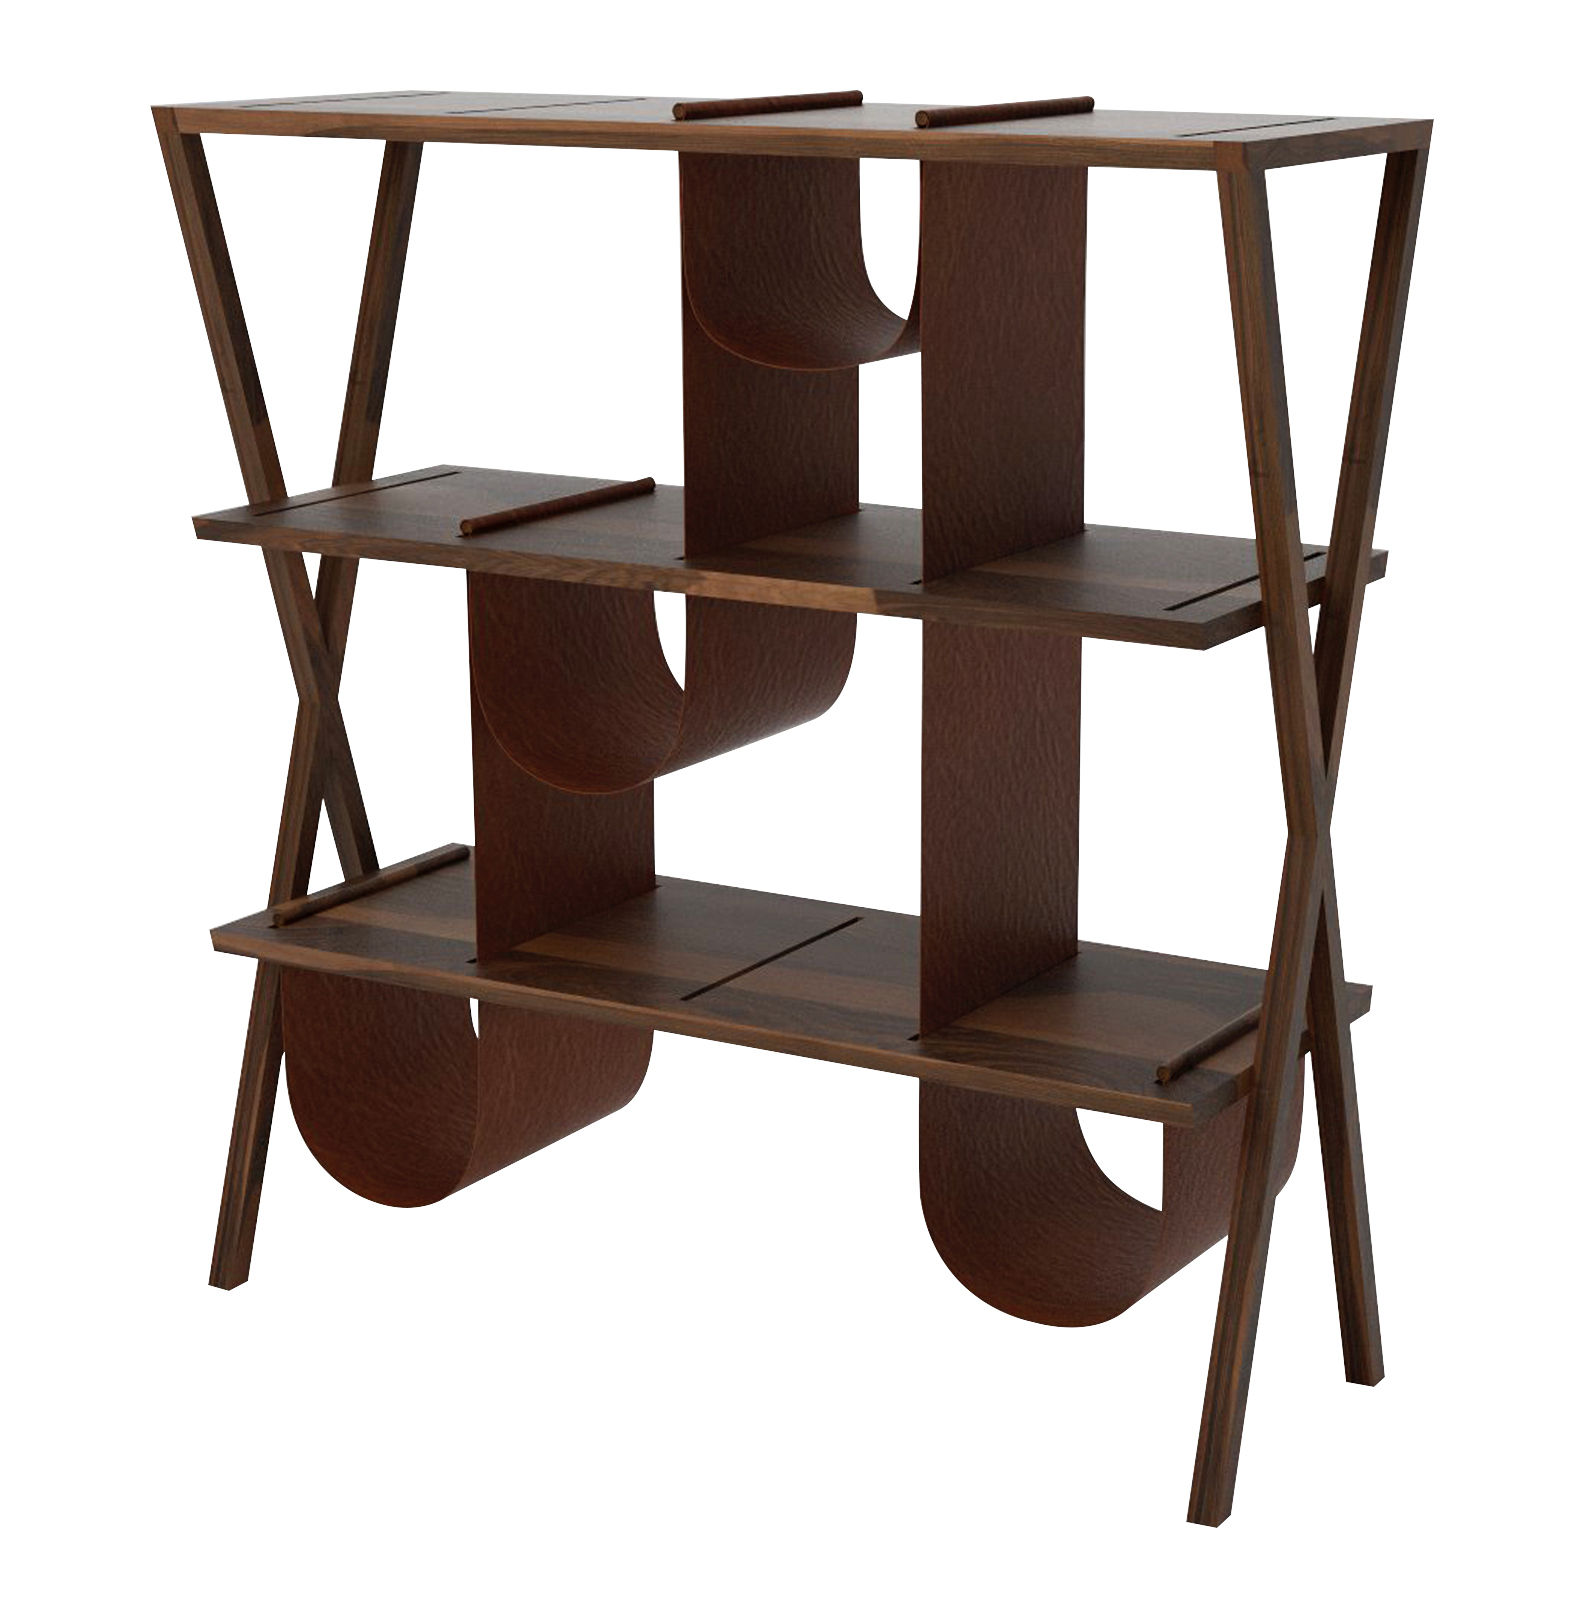 Furniture - Bookcases & Bookshelves - Josè Bookcase - Walnut & leather / L 116 x H 120 cm by Valsecchi 1918 - Walnut / Brown leather - Full grain leather, Solid walnut